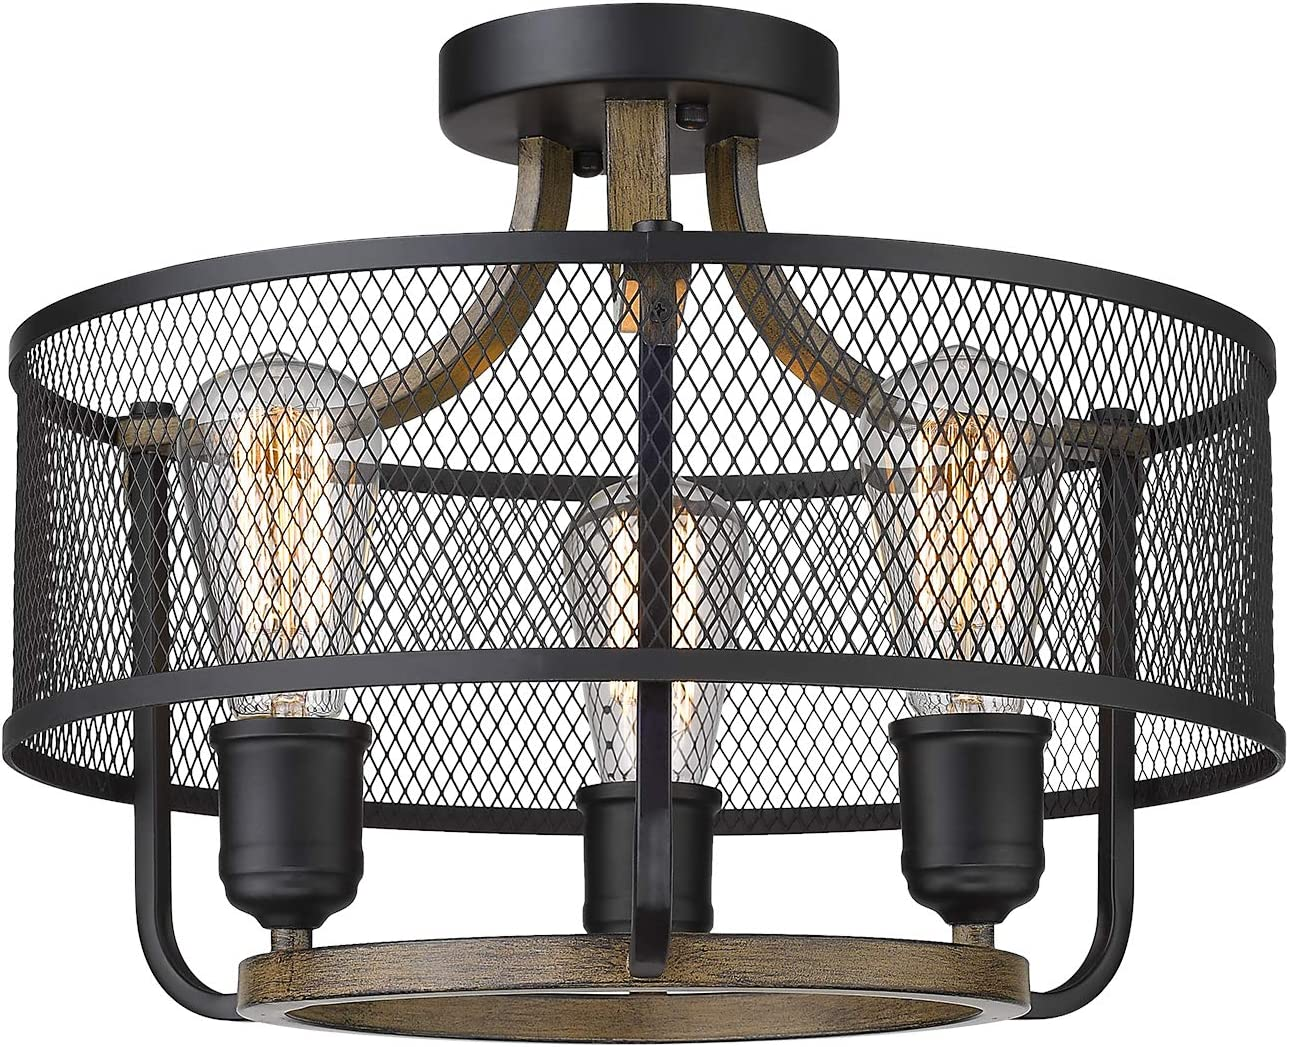 Osimir 3-Light Semi-Flush Mount Ceiling Light, Industrial Ceiling Fixture in Matte Black & Wooden Finish, Round Ceiling Light Fixture for Bedroom, Living Room, Dining Room RE9166-3